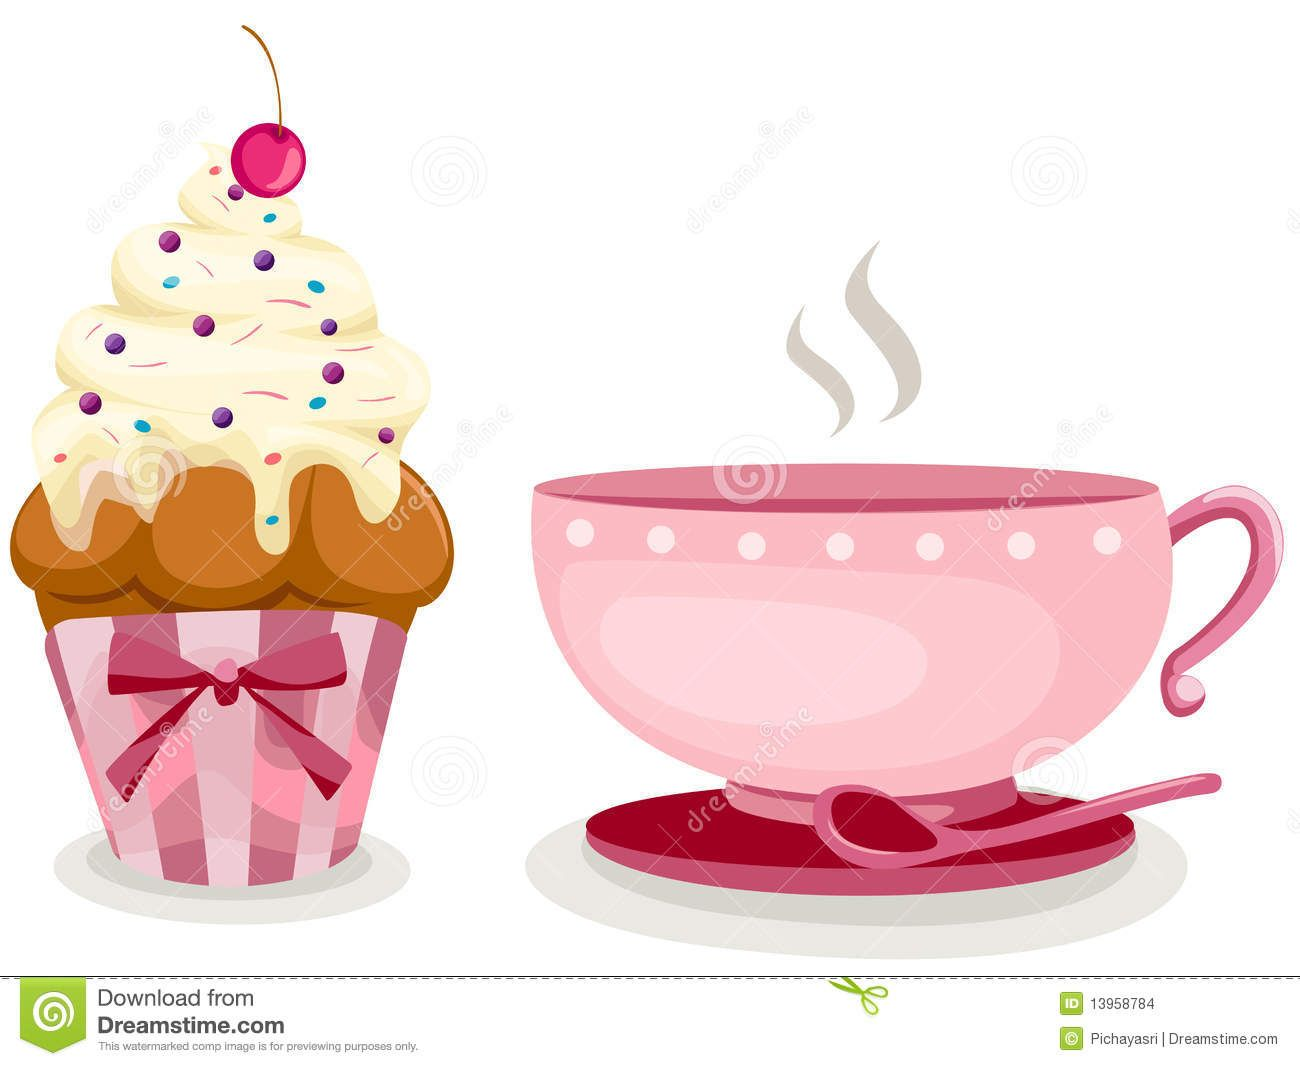 Clipart Kuchen Und Kaffee Coffee And Cupcakes Google Search The Best Part Of Waking Up